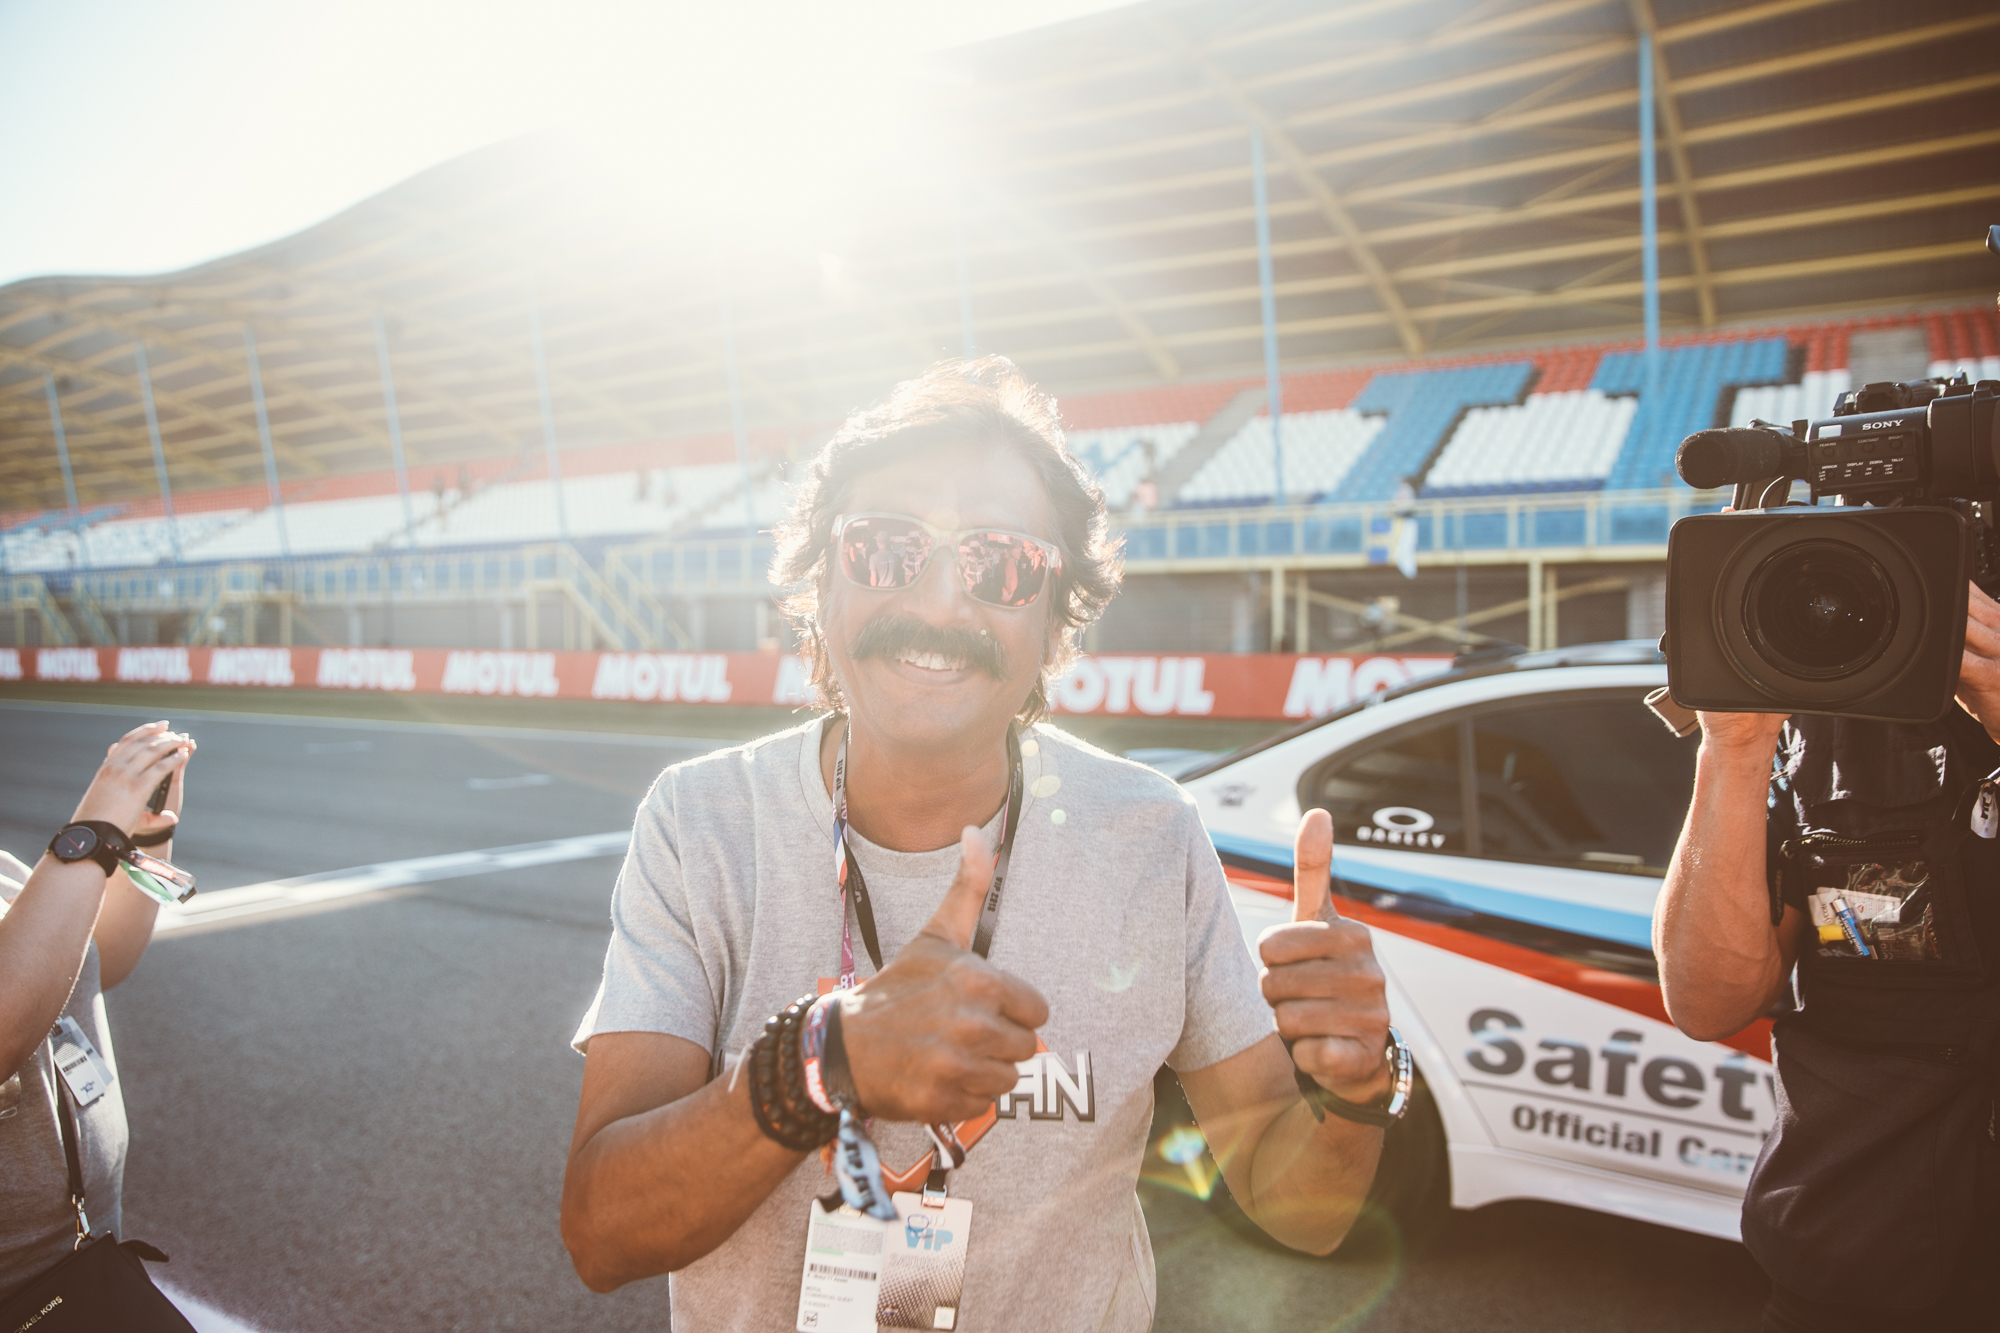 MOTUL SUPERFANS: A CHAT WITH CHARLES TURNER